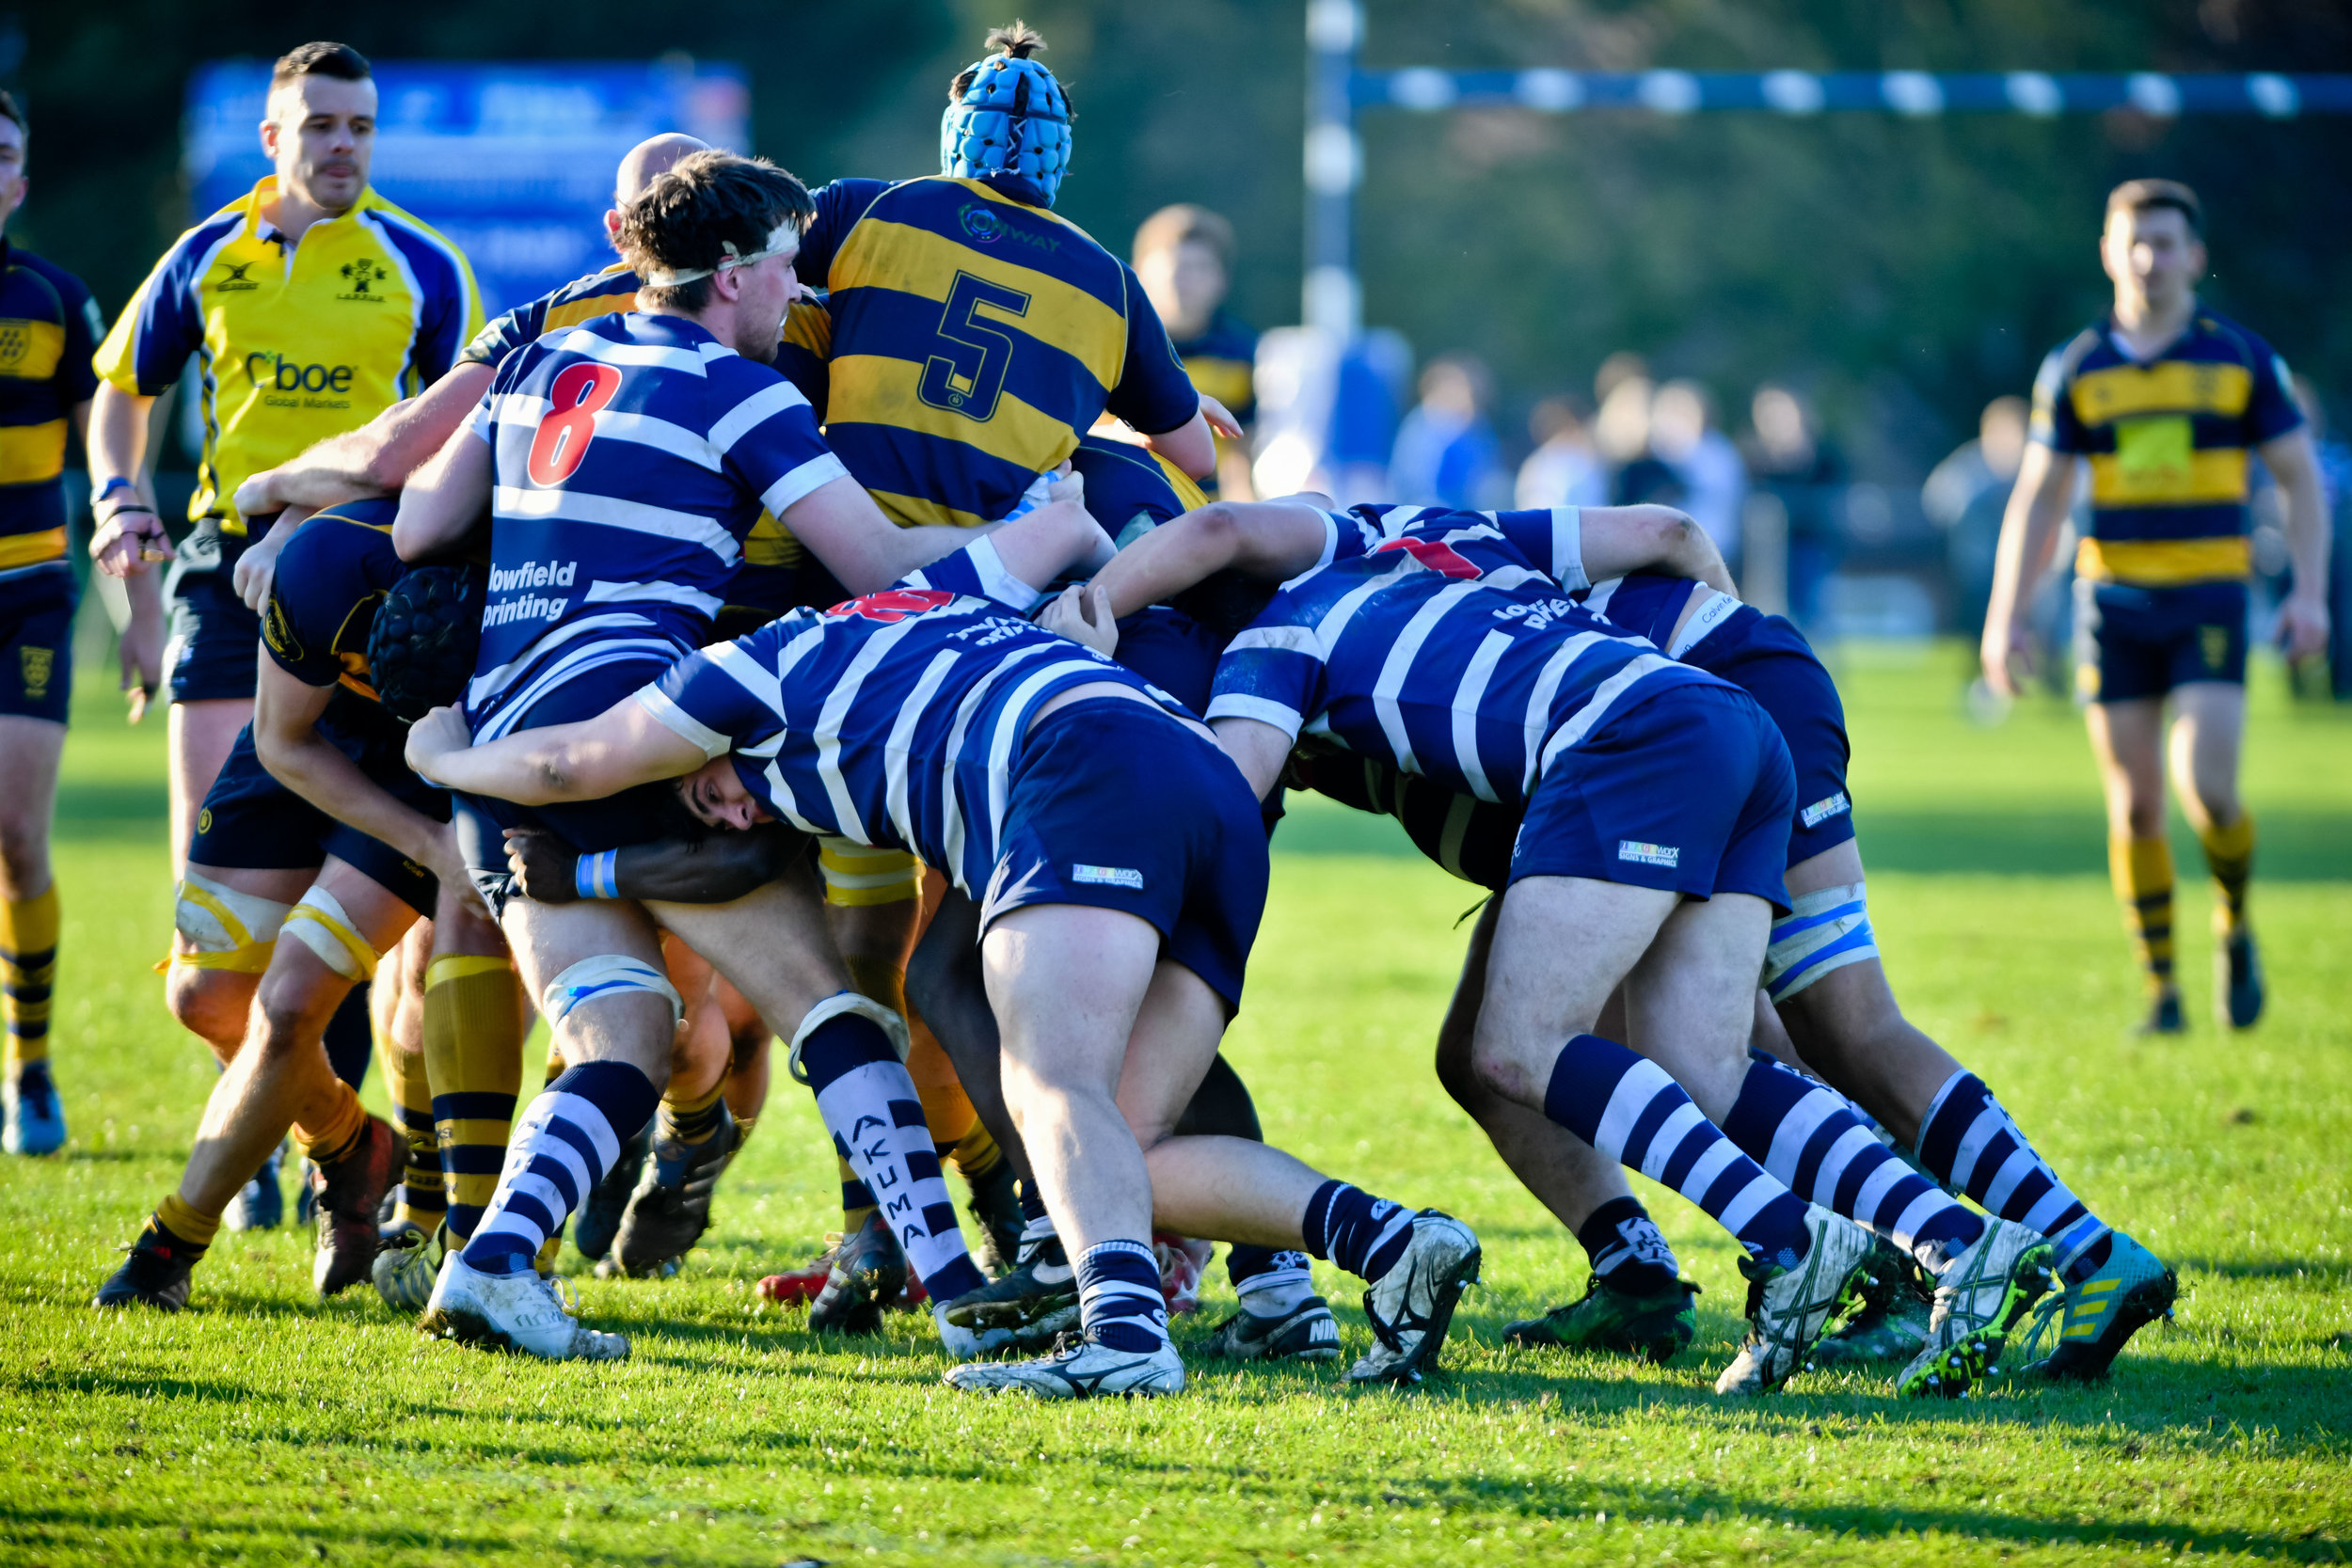 Oaks managed to squeeze past Westcombe Park when the sides clashed earlier in the season. Photo Credit: David Purday